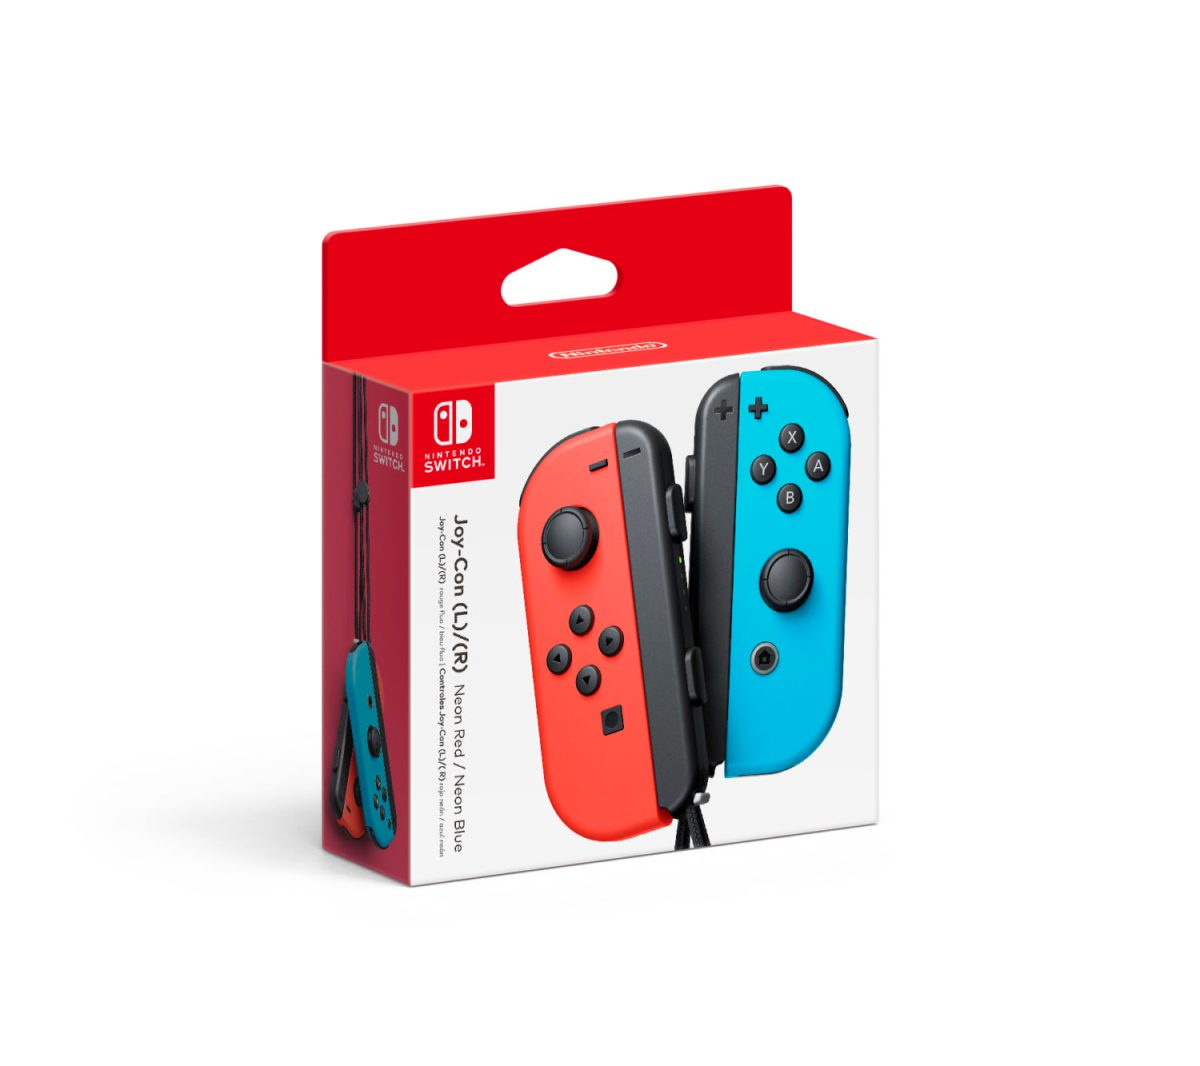 Amazon: Huge Discounts On Joy-Con